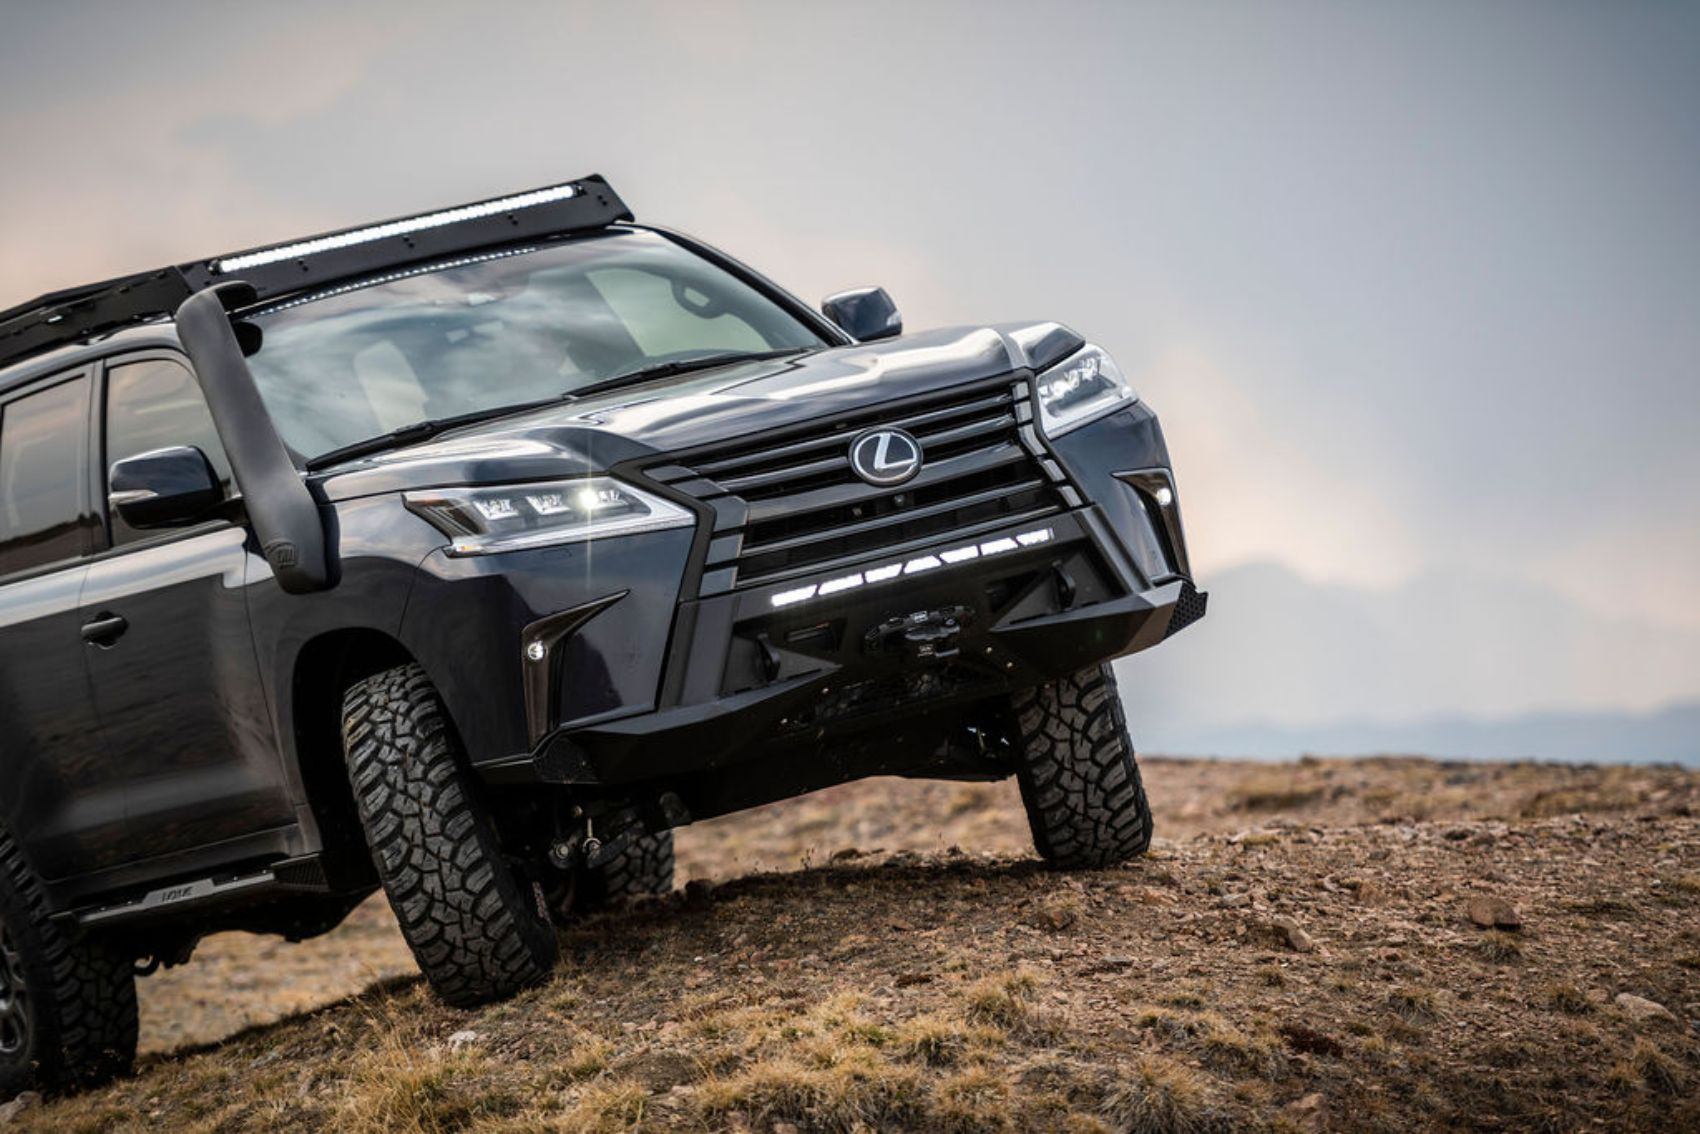 Lexus J201 Concept to Tackle Upcoming Rebelle Rally